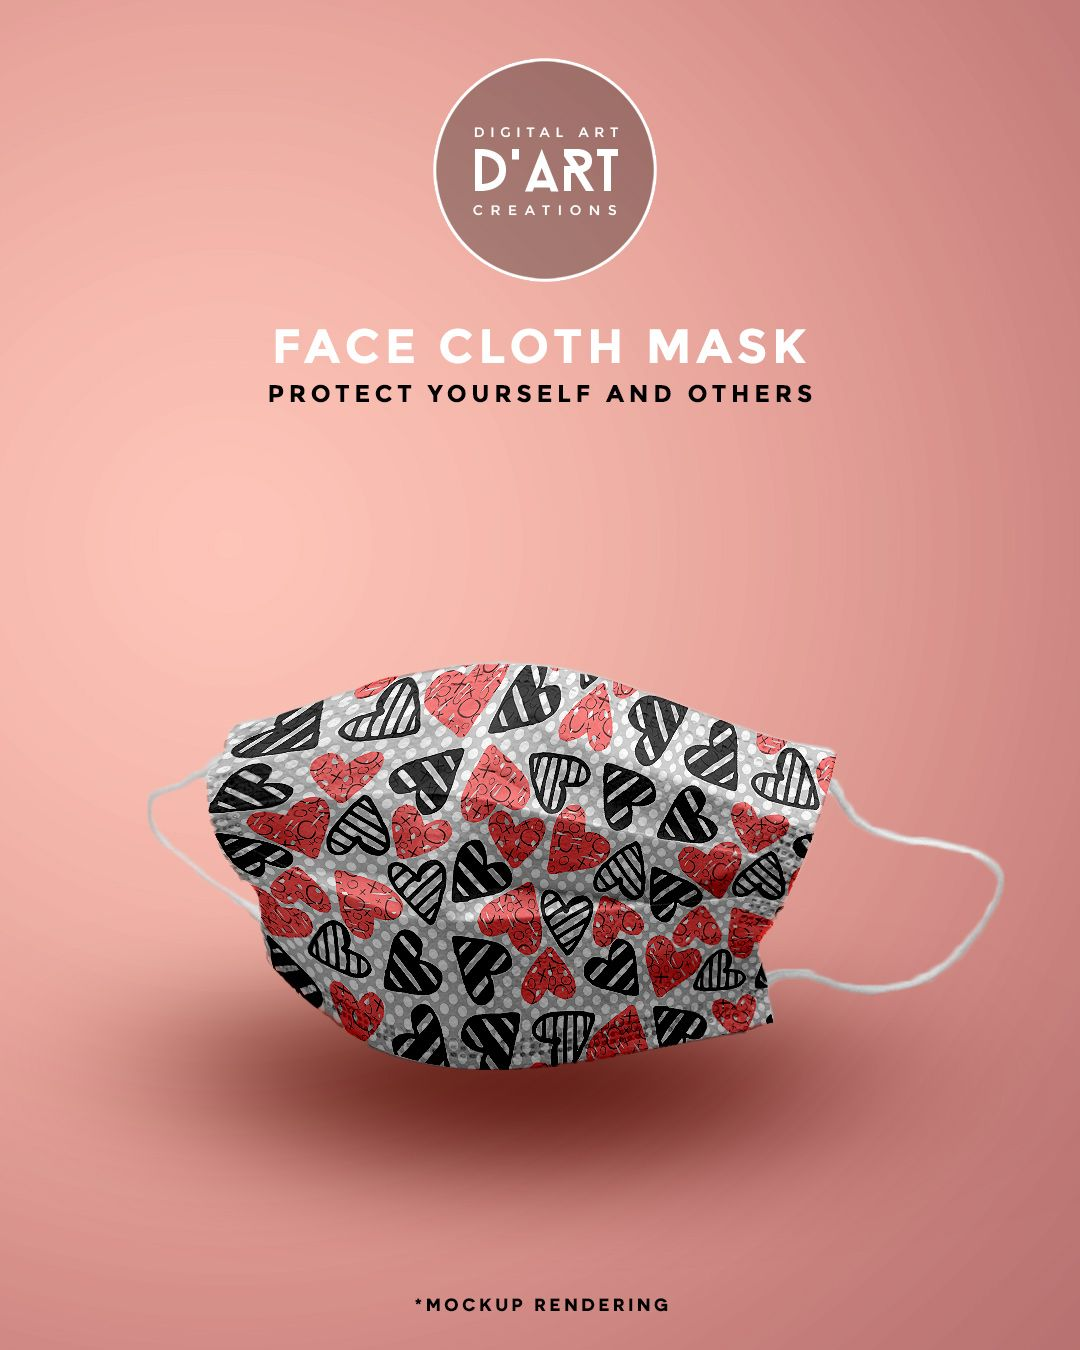 Cute and lovable seamless hearts pattern. Wear a mask, protect yourself and others... #clothfacemask #facemask #mask #clothfacecover #facecover #wearamask #protectyourself #stayathome #staysafe #hearts #love #whimsical #handdrawn #cute #heartspattern #lovable #zazzle #zazzler #zazzleshop #digitalartcreations